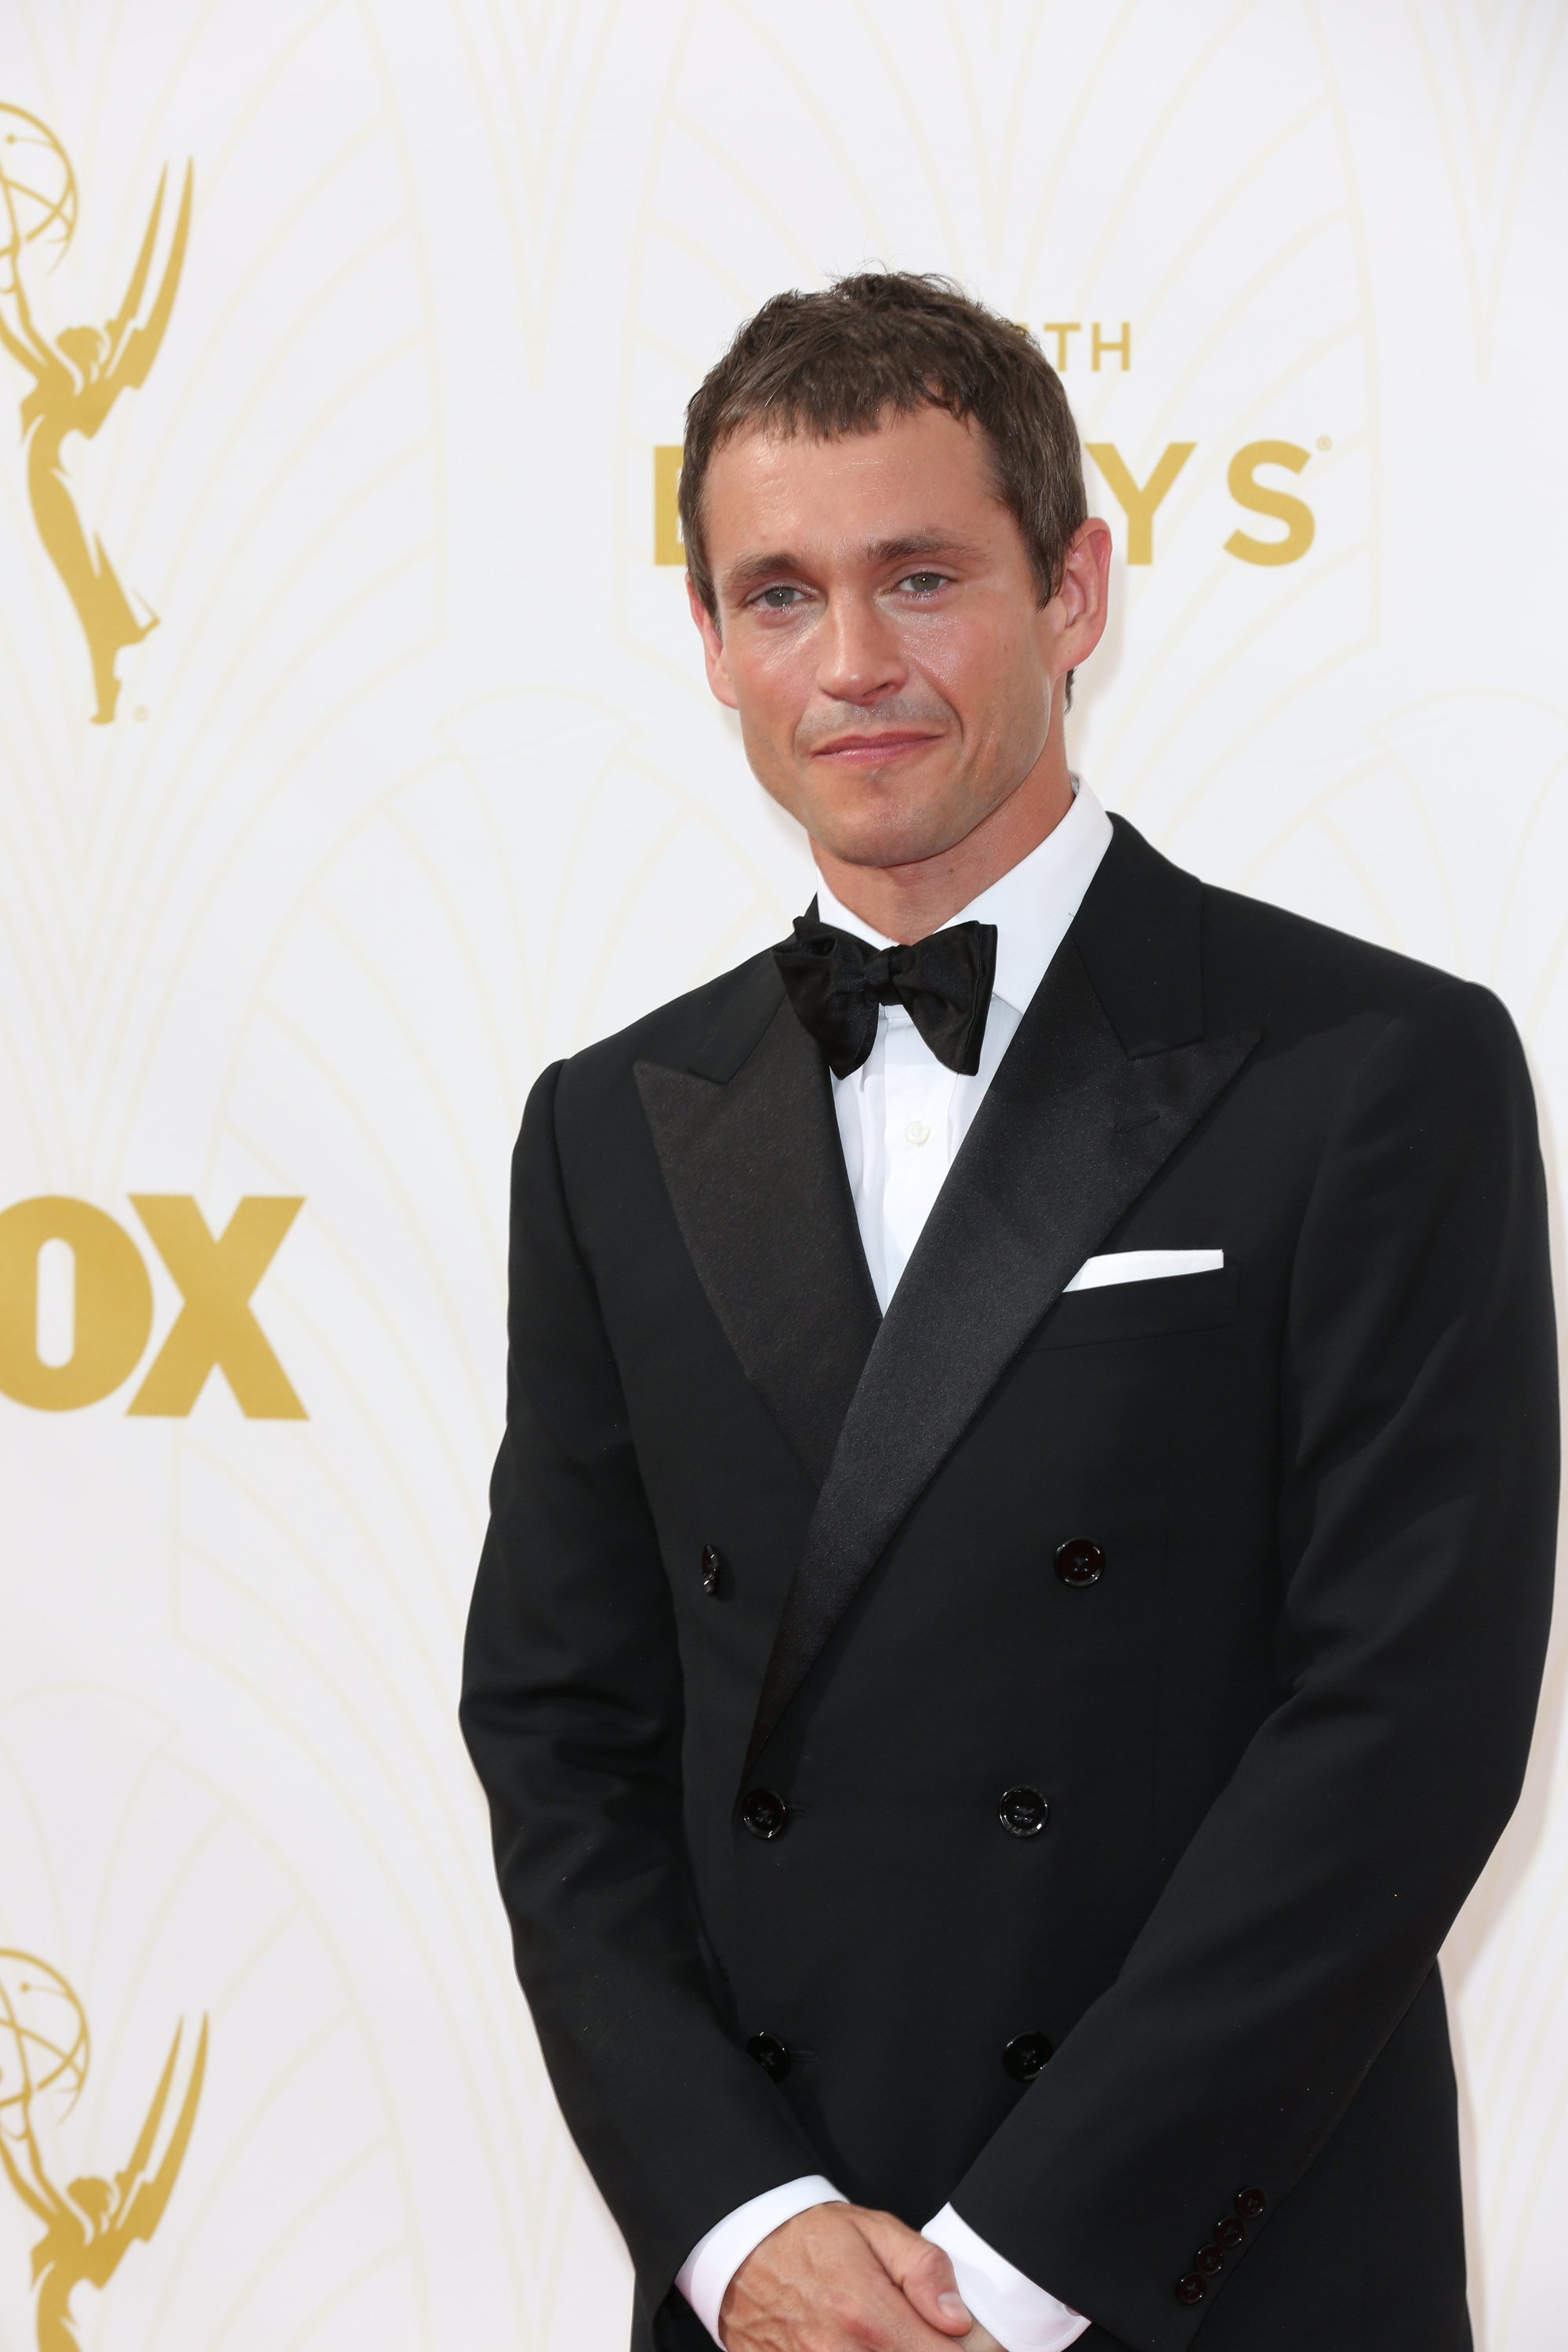 Celebrities arrive at 67th Emmys Red Carpet at Microsoft Theater.  Featuring: Hugh Dancy Where: Los Angeles, California, United States When: 20 Sep 2015 Credit: Brian To/WENN.com